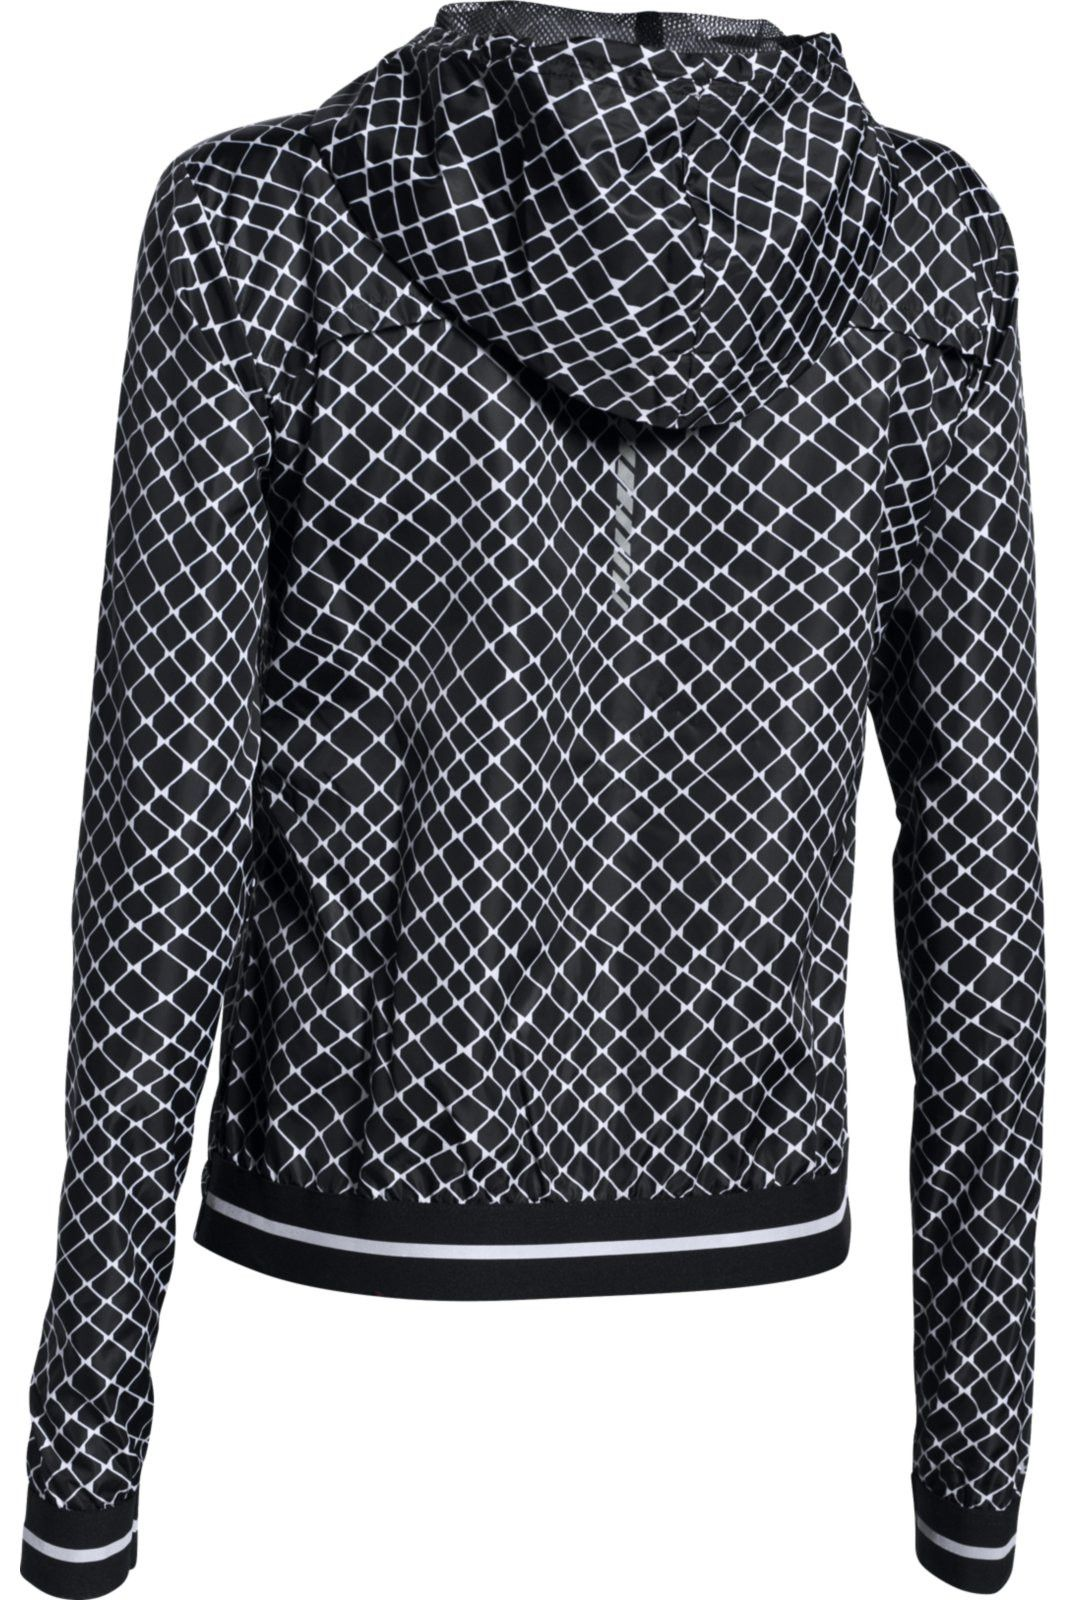 Under Armour Printed Layered Up Storm Jacket BLK/WHT/REF image 3 - The Sports Edit